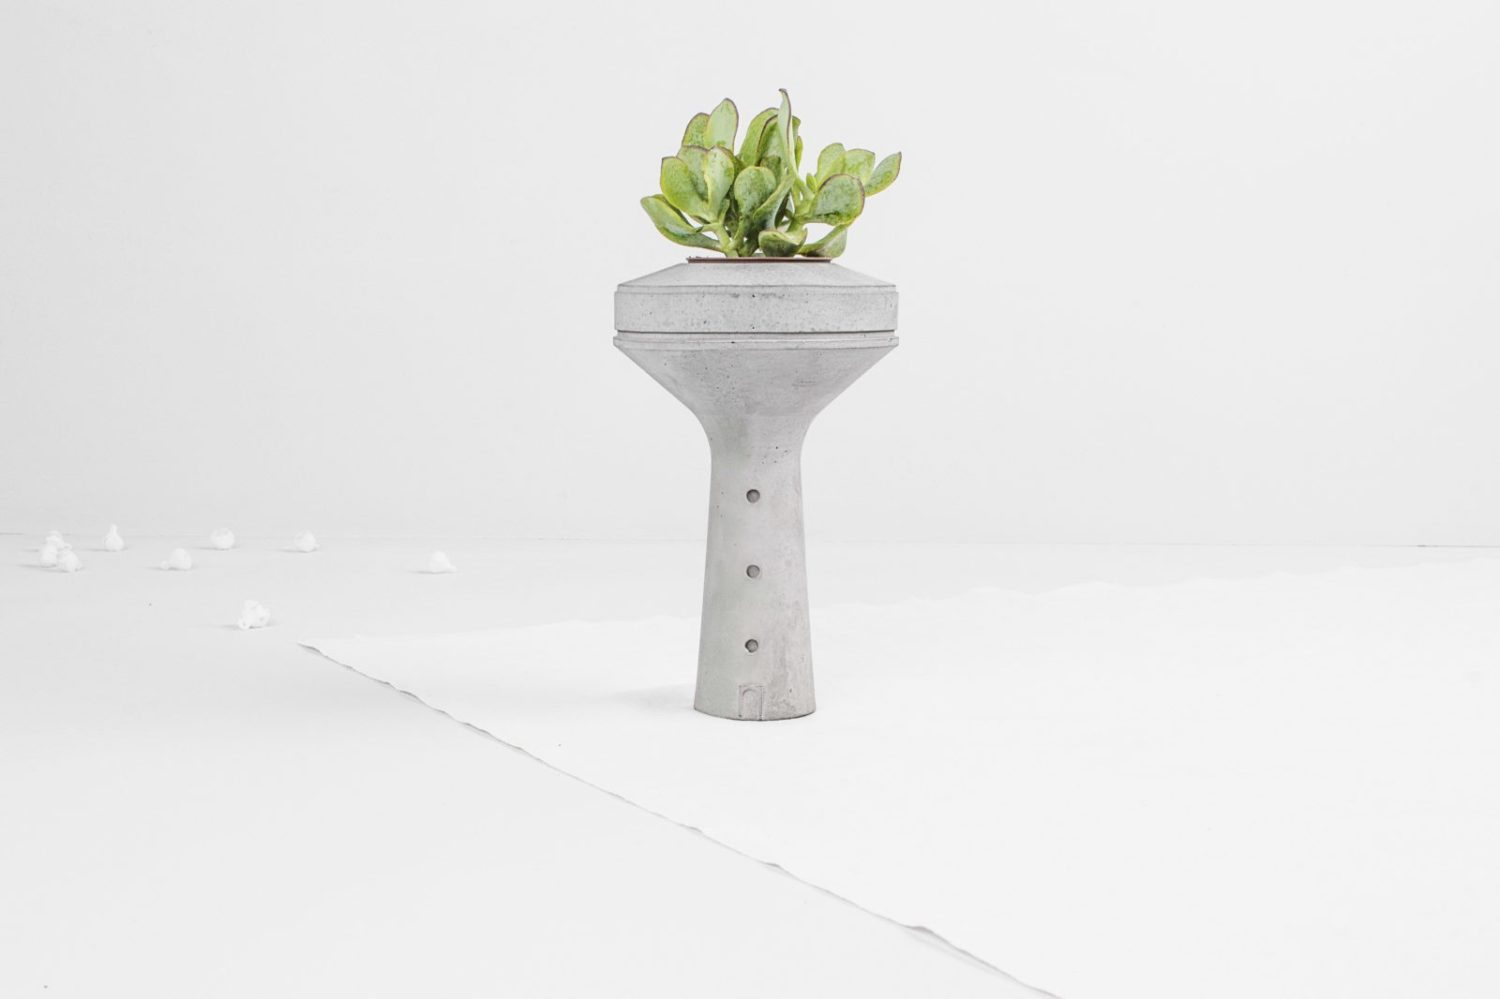 Siment-concrete-planter-for-succulents-brutalist-architectually-inspired-miniature-water-tower1-Tiipoi-02-1500×999